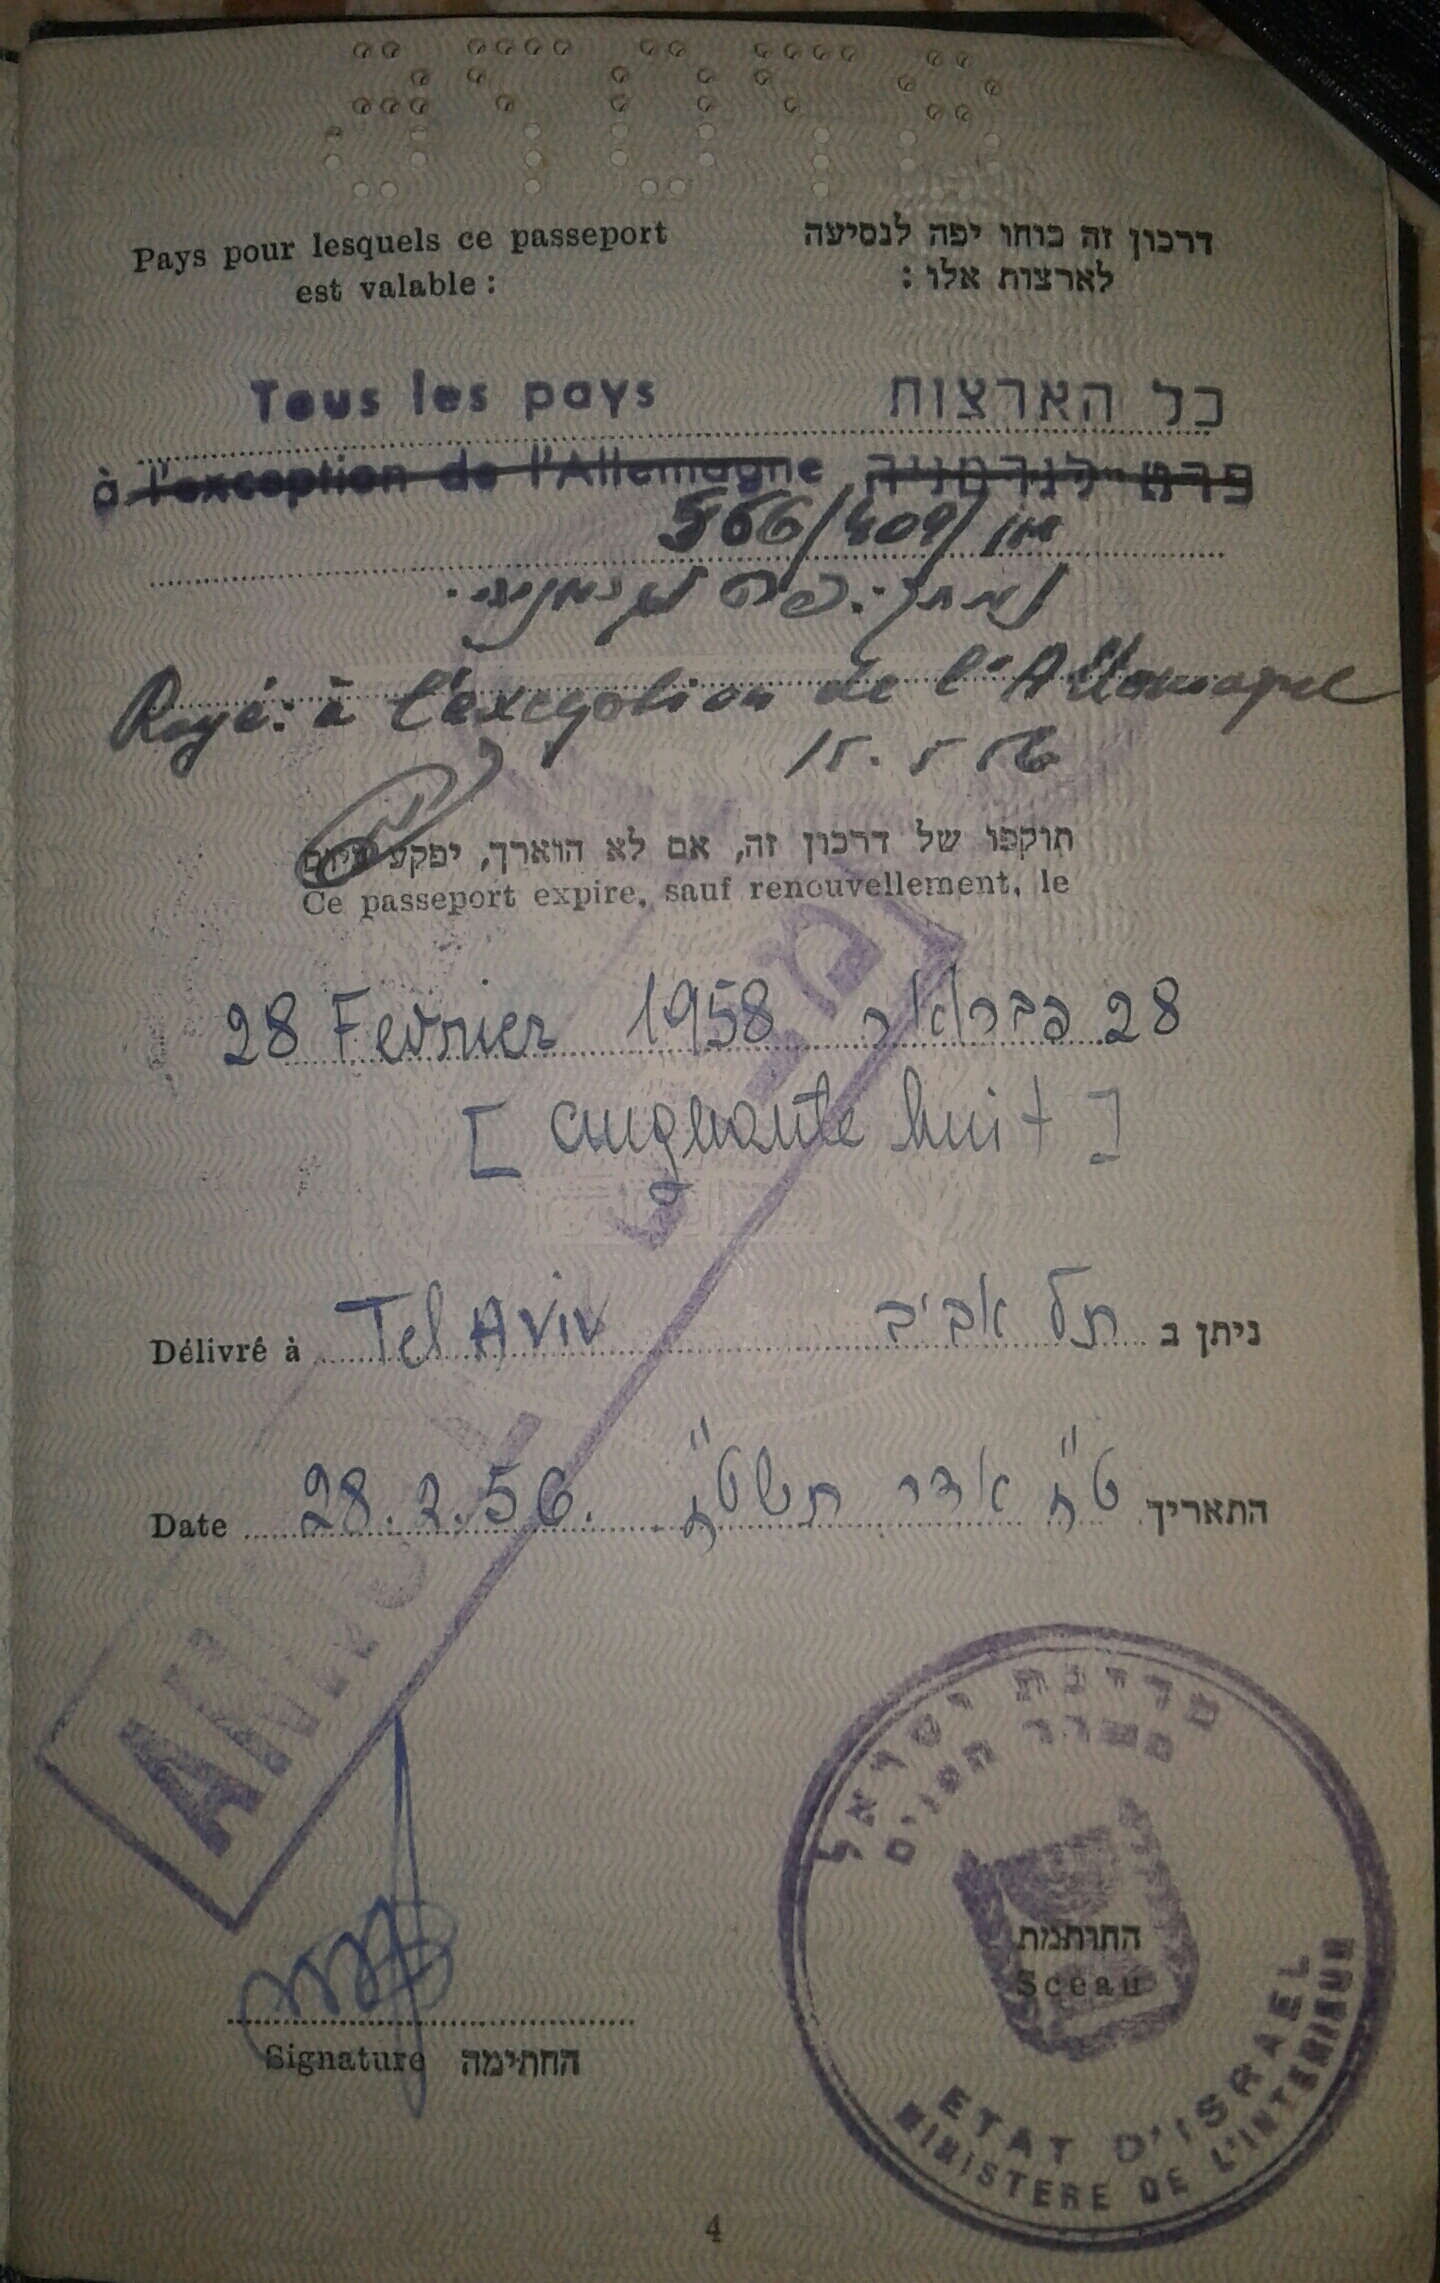 FileA Stamp In An Israeli Passport Daclares Validity To All Countries Except Germany Until 1956